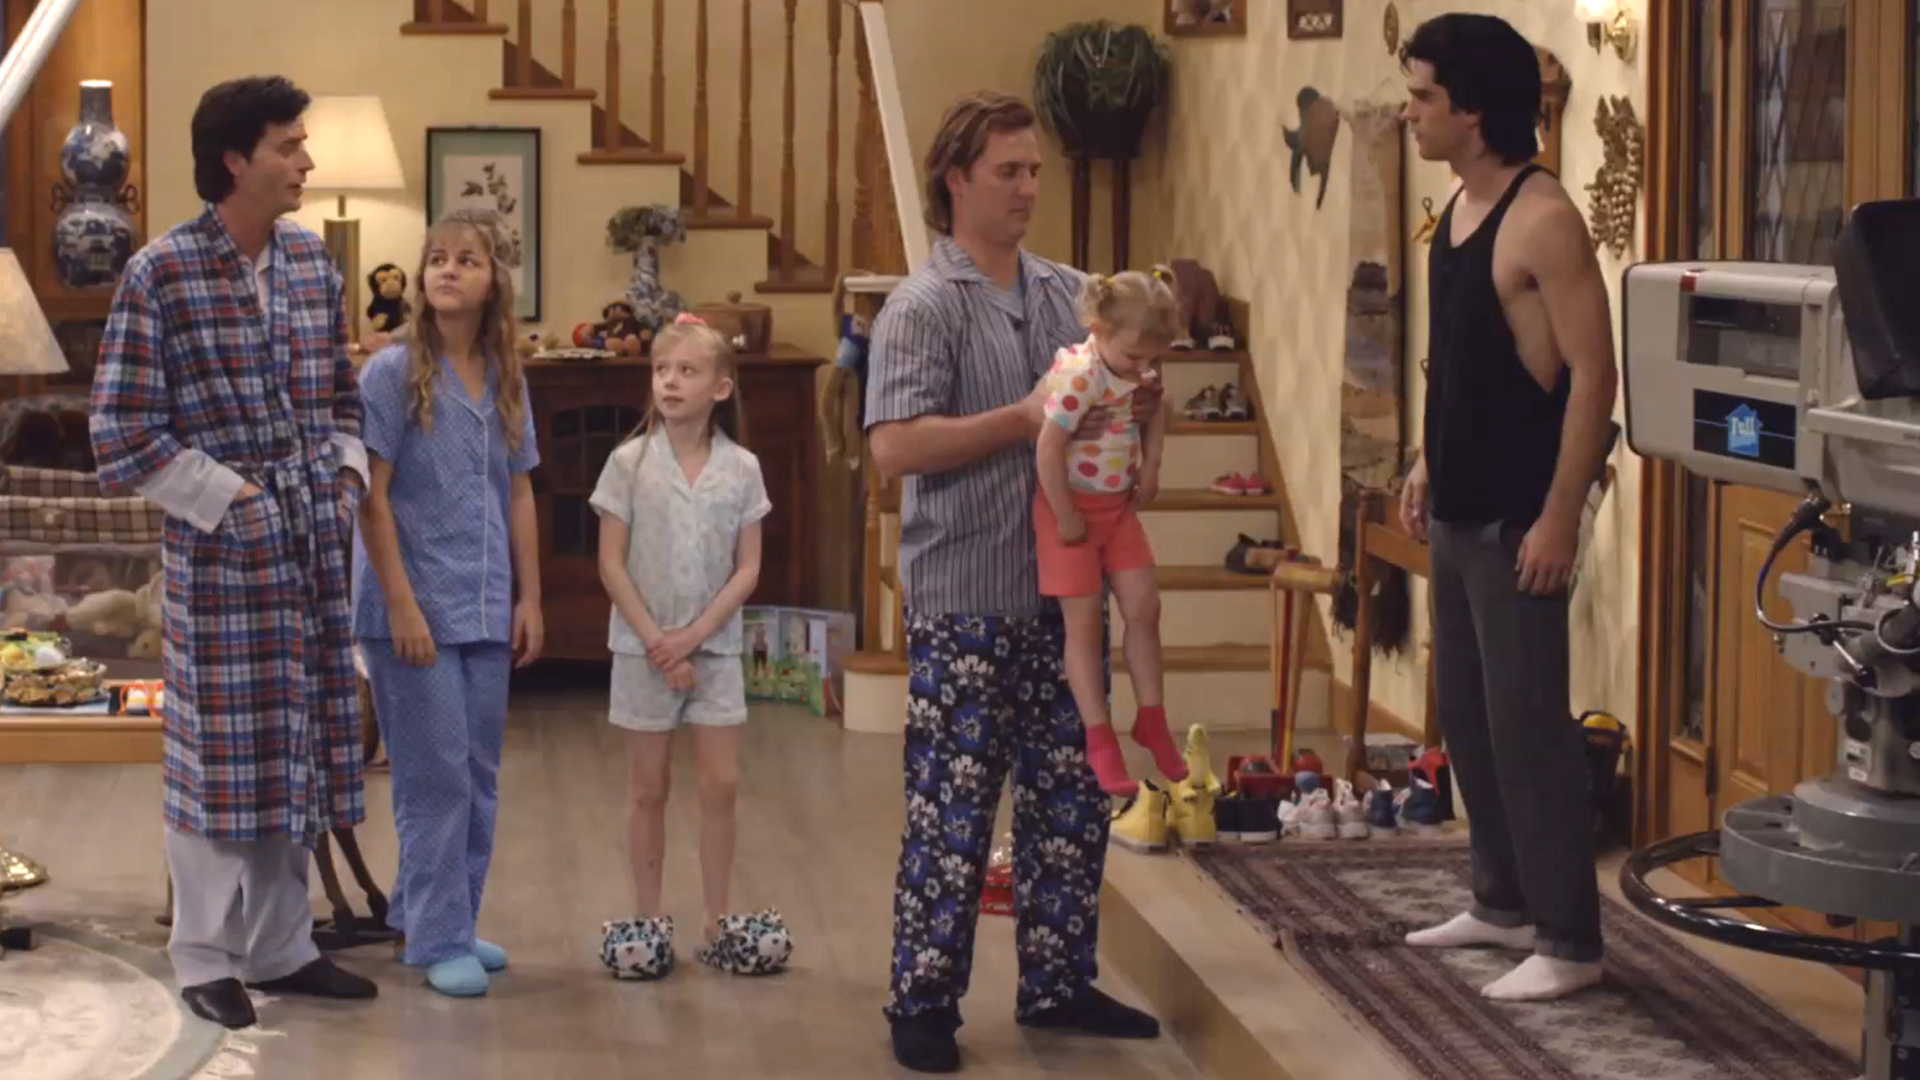 39 unauthorized full house story 39 clip gives sneak peek at - House of tv show ...